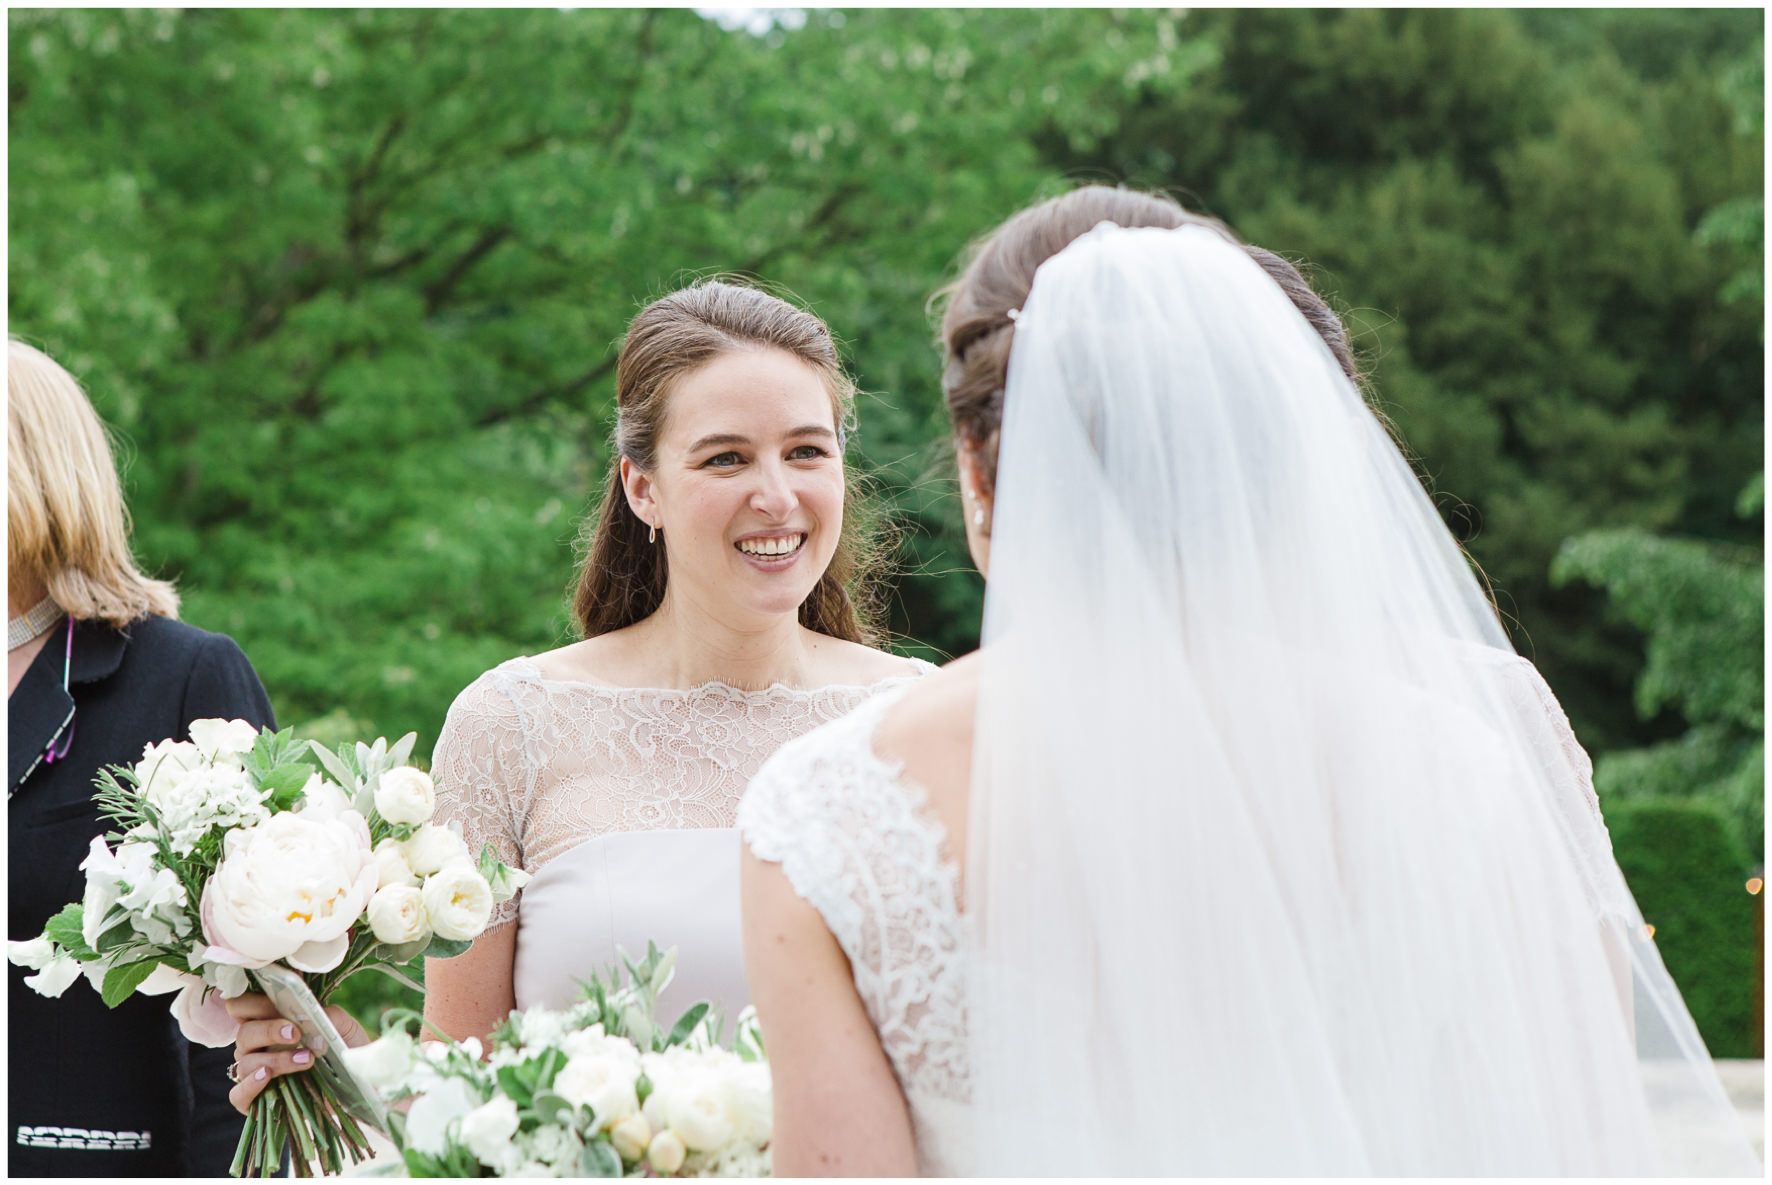 Lucy Davenport Photography, Cornwell Manor, wedding venue, Oxfordshire, Cotswold wedding, bridesmaid